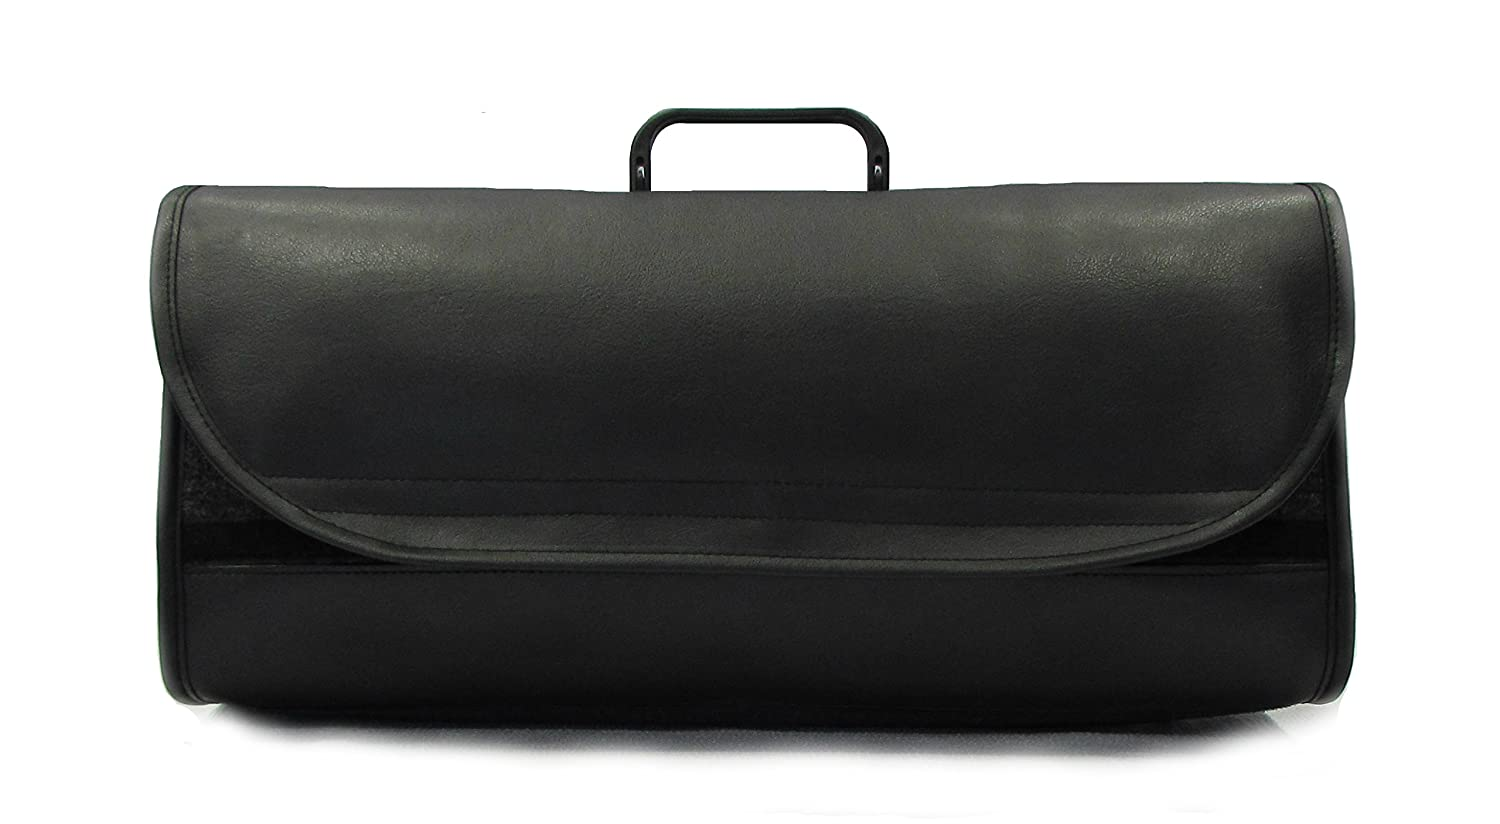 Car boot / vehicle organiser tool bag in leather. AVITON LTD